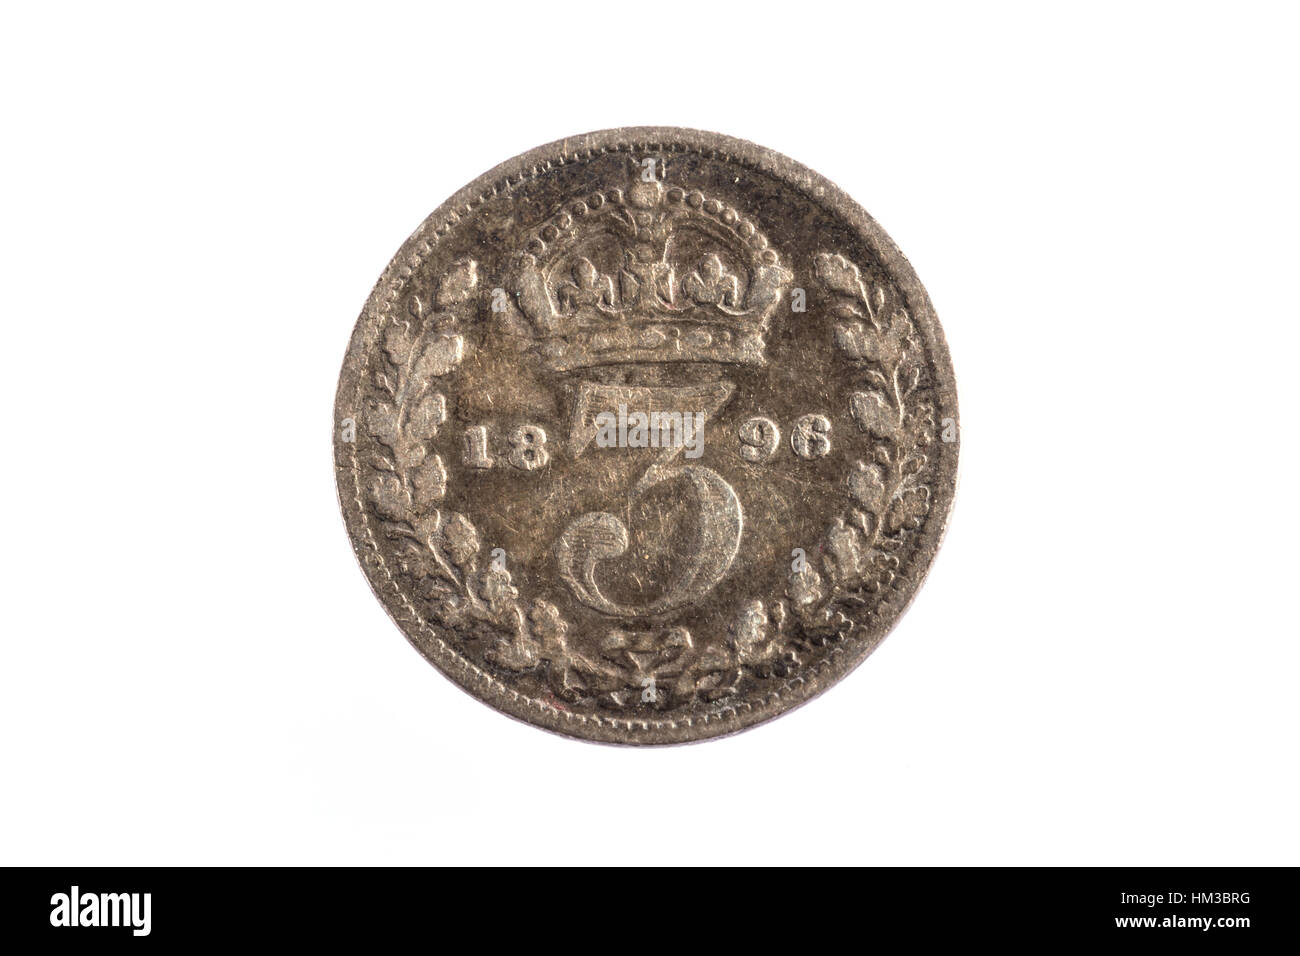 An 1898 Three Penny imperial coin - Stock Image